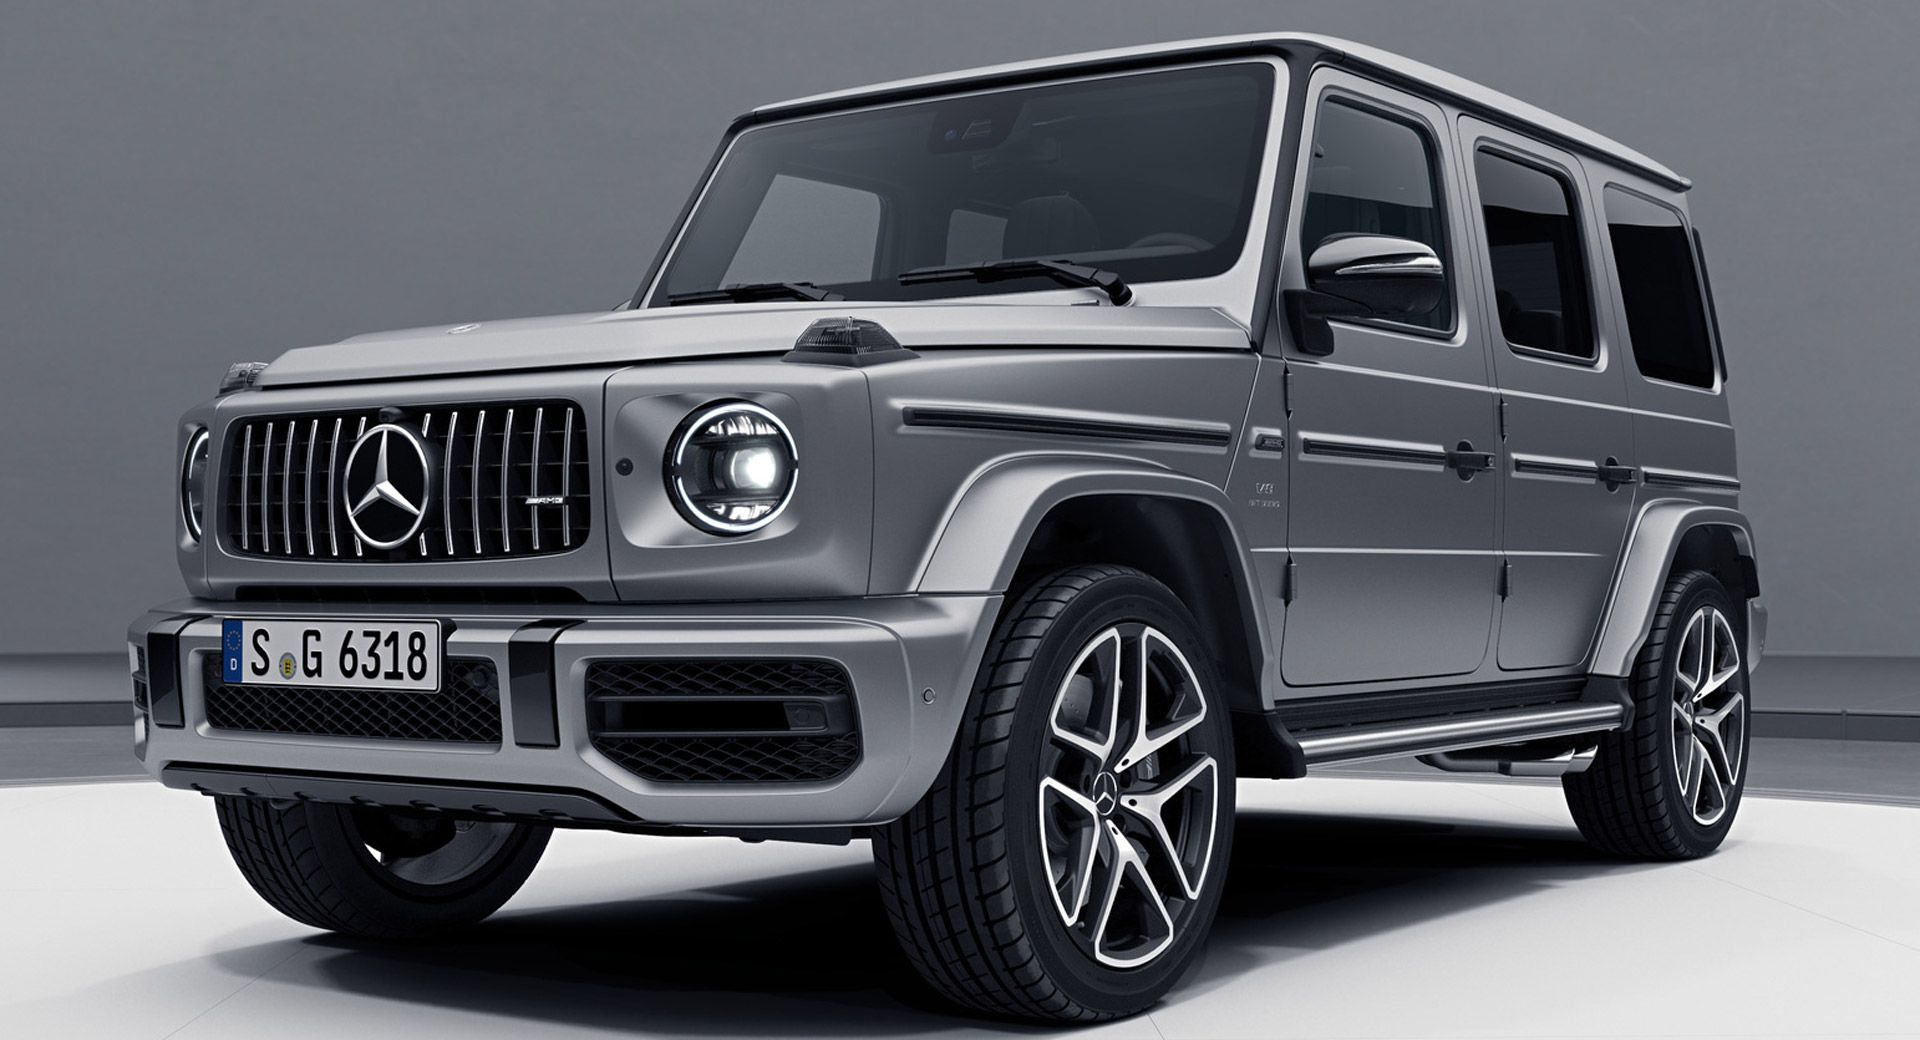 It doesn t more sinister than a 577 horsepower SUV with blacked out trim